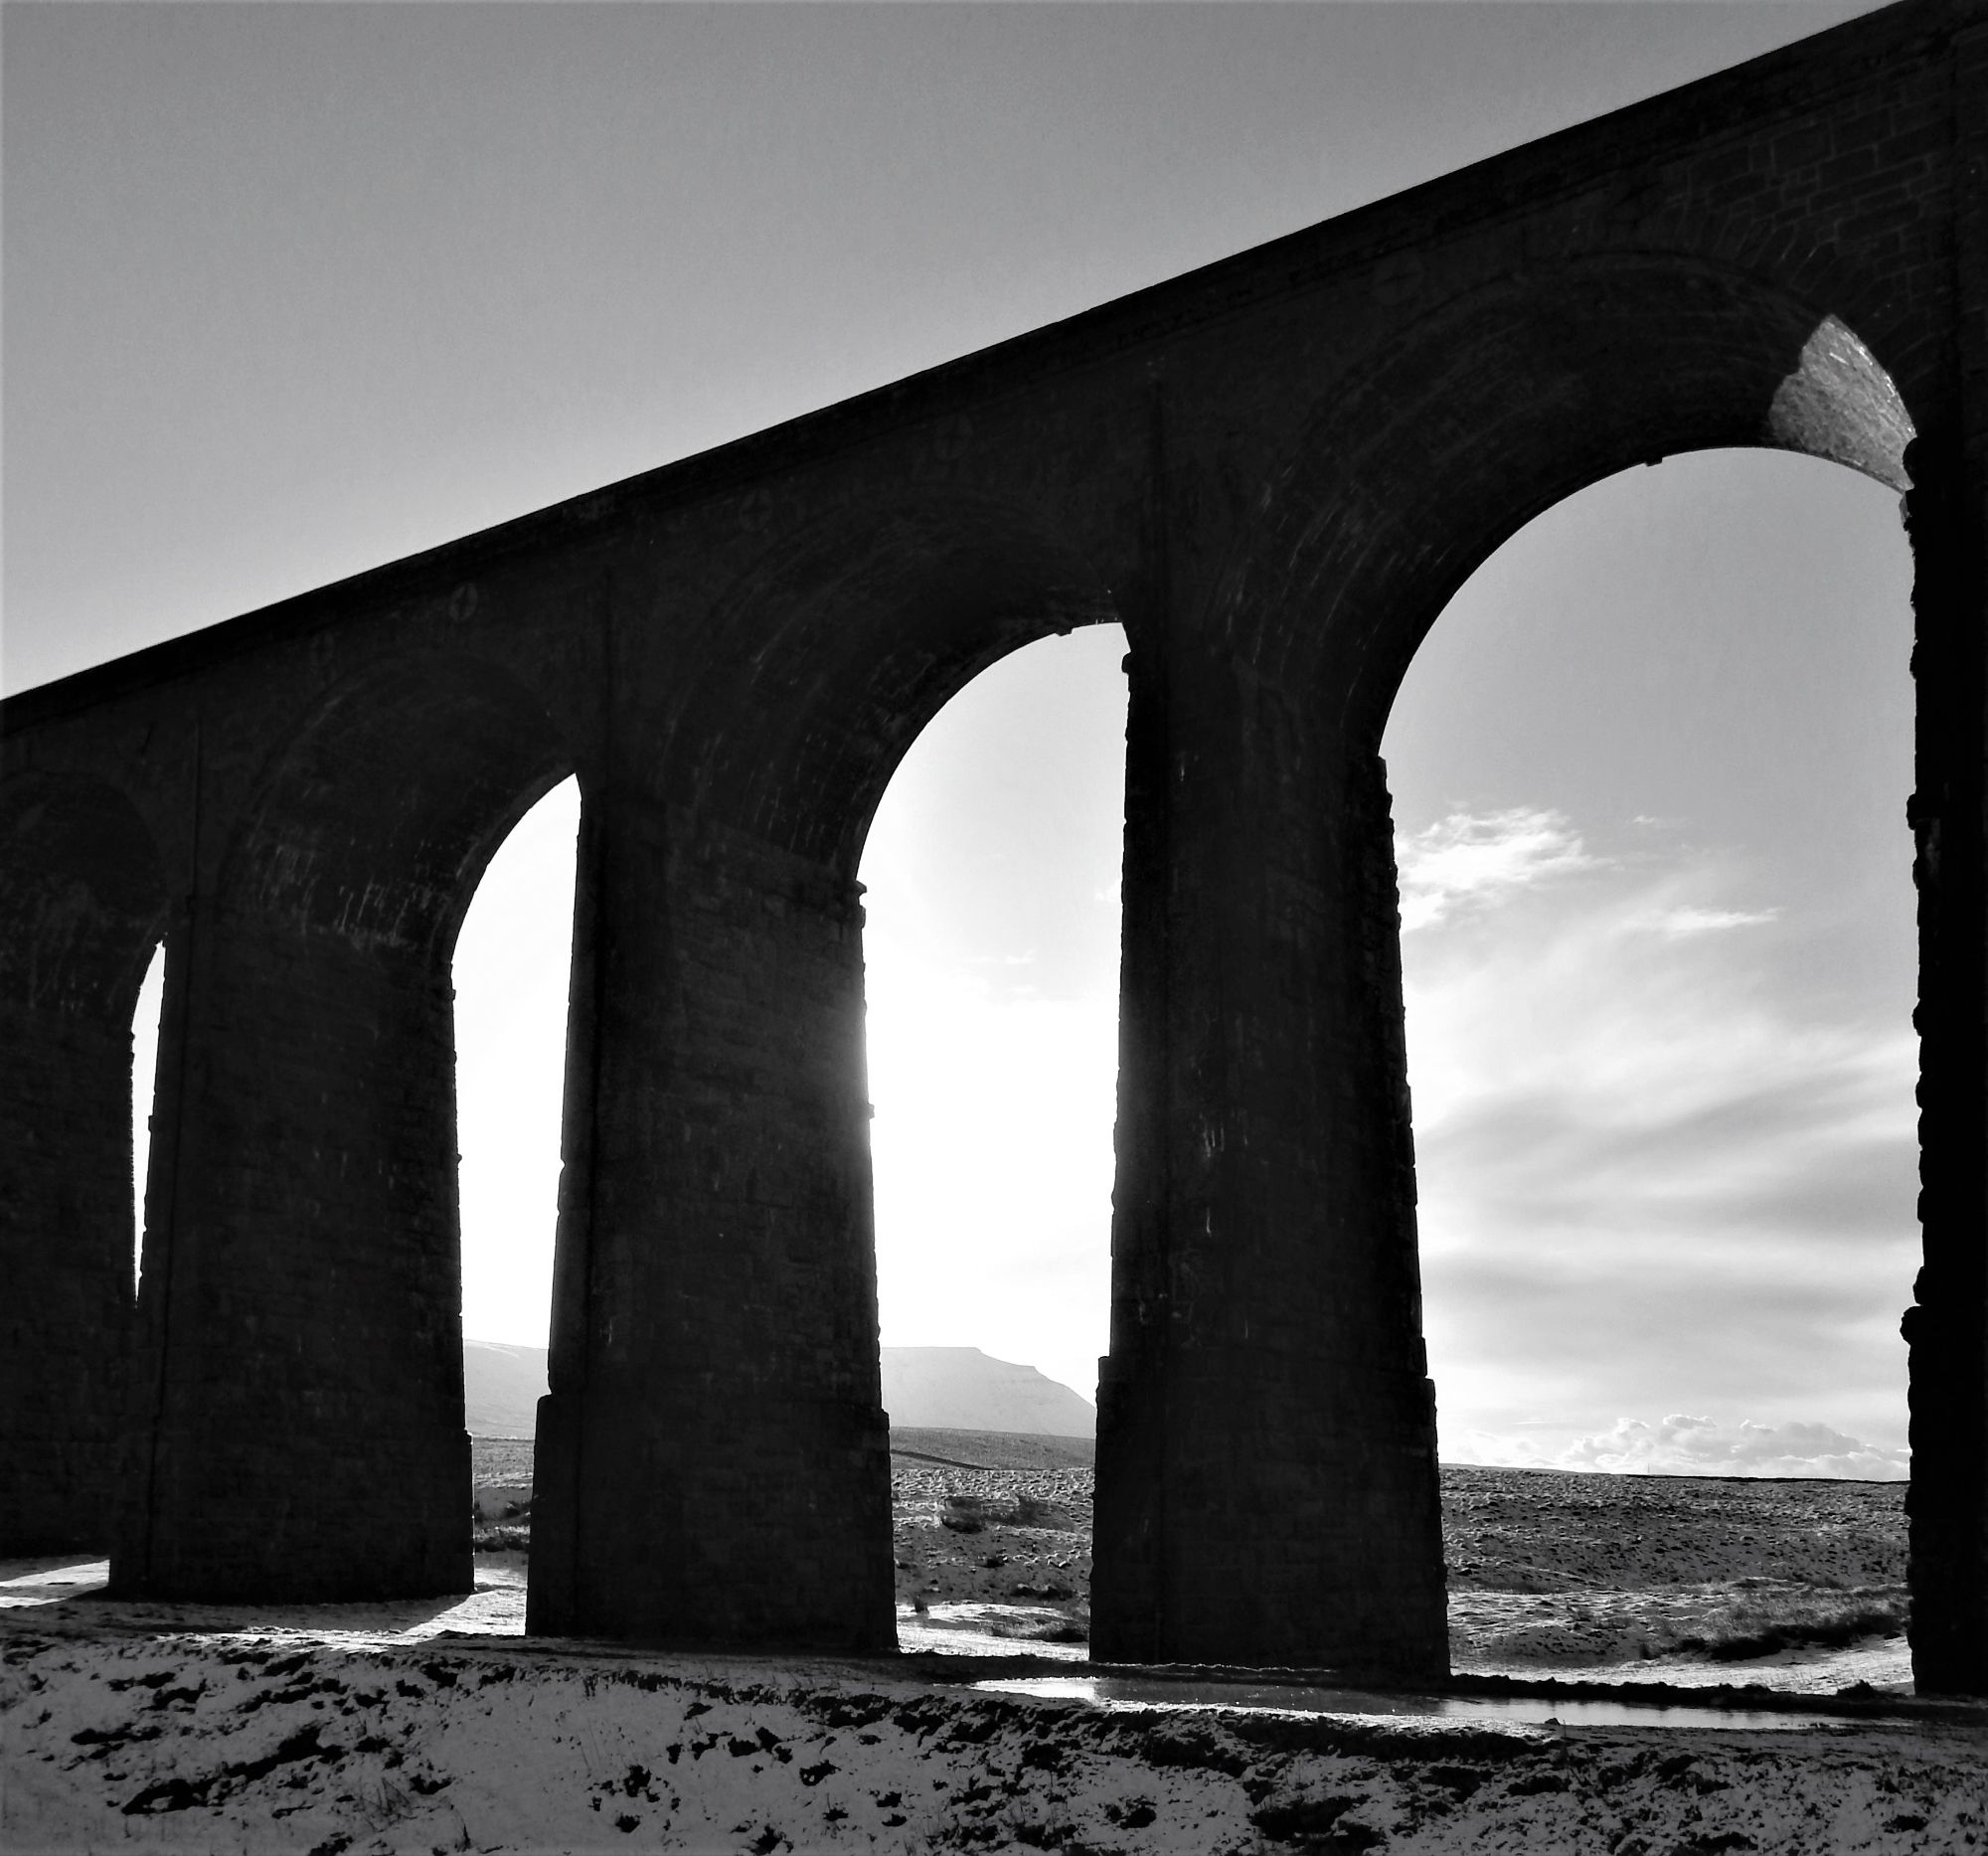 Ingleborough viewed through Ribblehead Viaduct